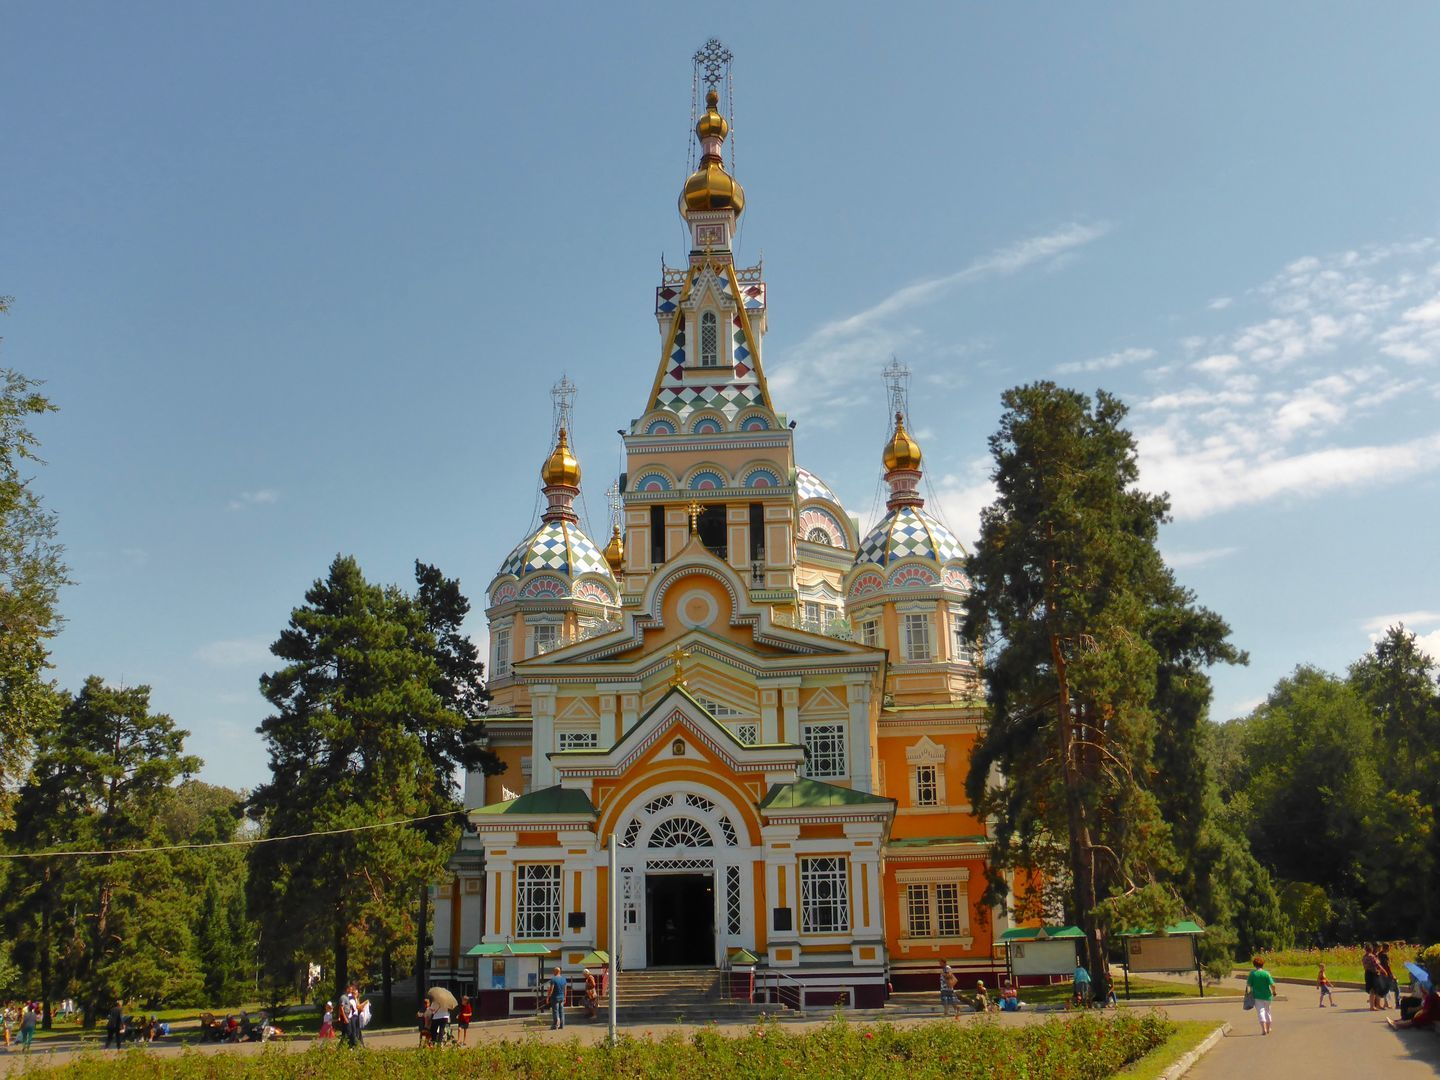 Zenkov cathedral in Almaty as seen in World EXPO 2017 Tour in Kazakhstan